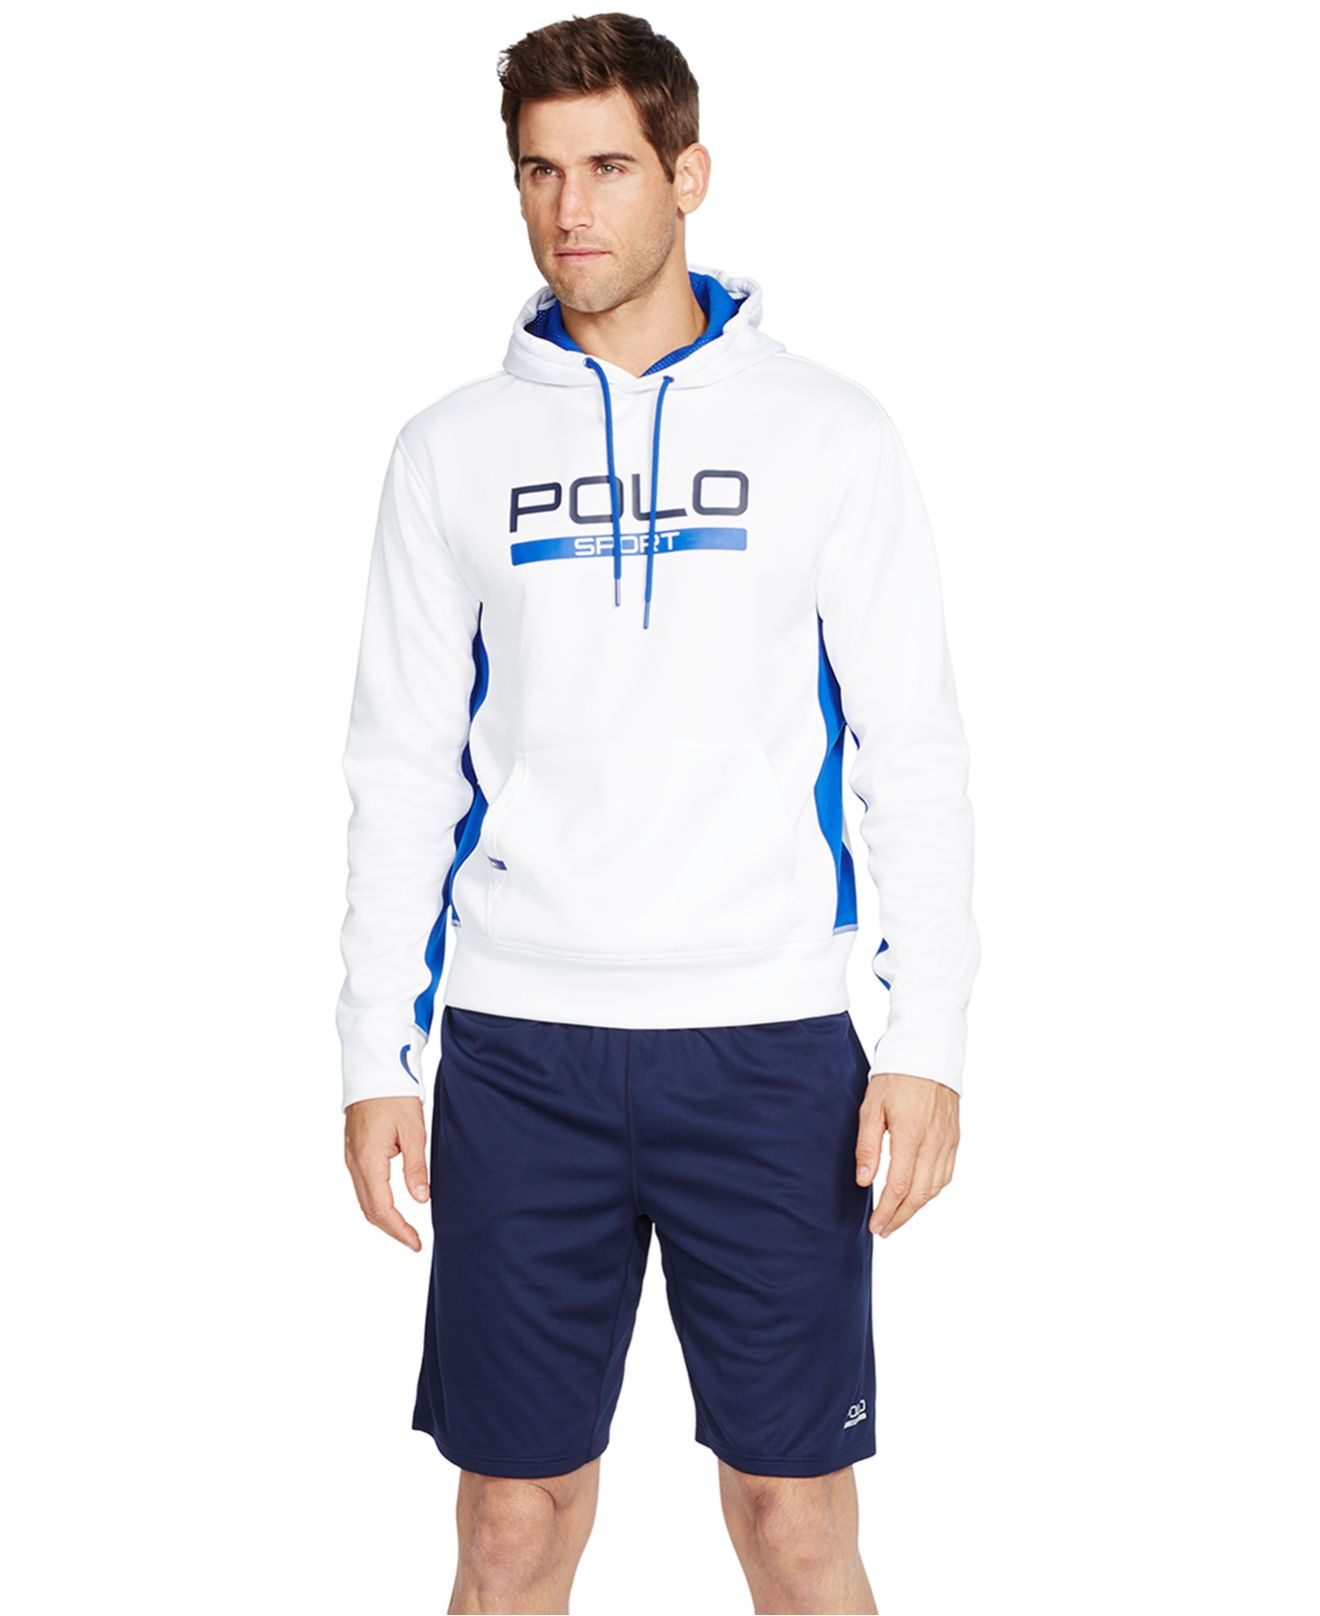 polo ralph lauren polo sport men 39 s athletic shorts in blue. Black Bedroom Furniture Sets. Home Design Ideas